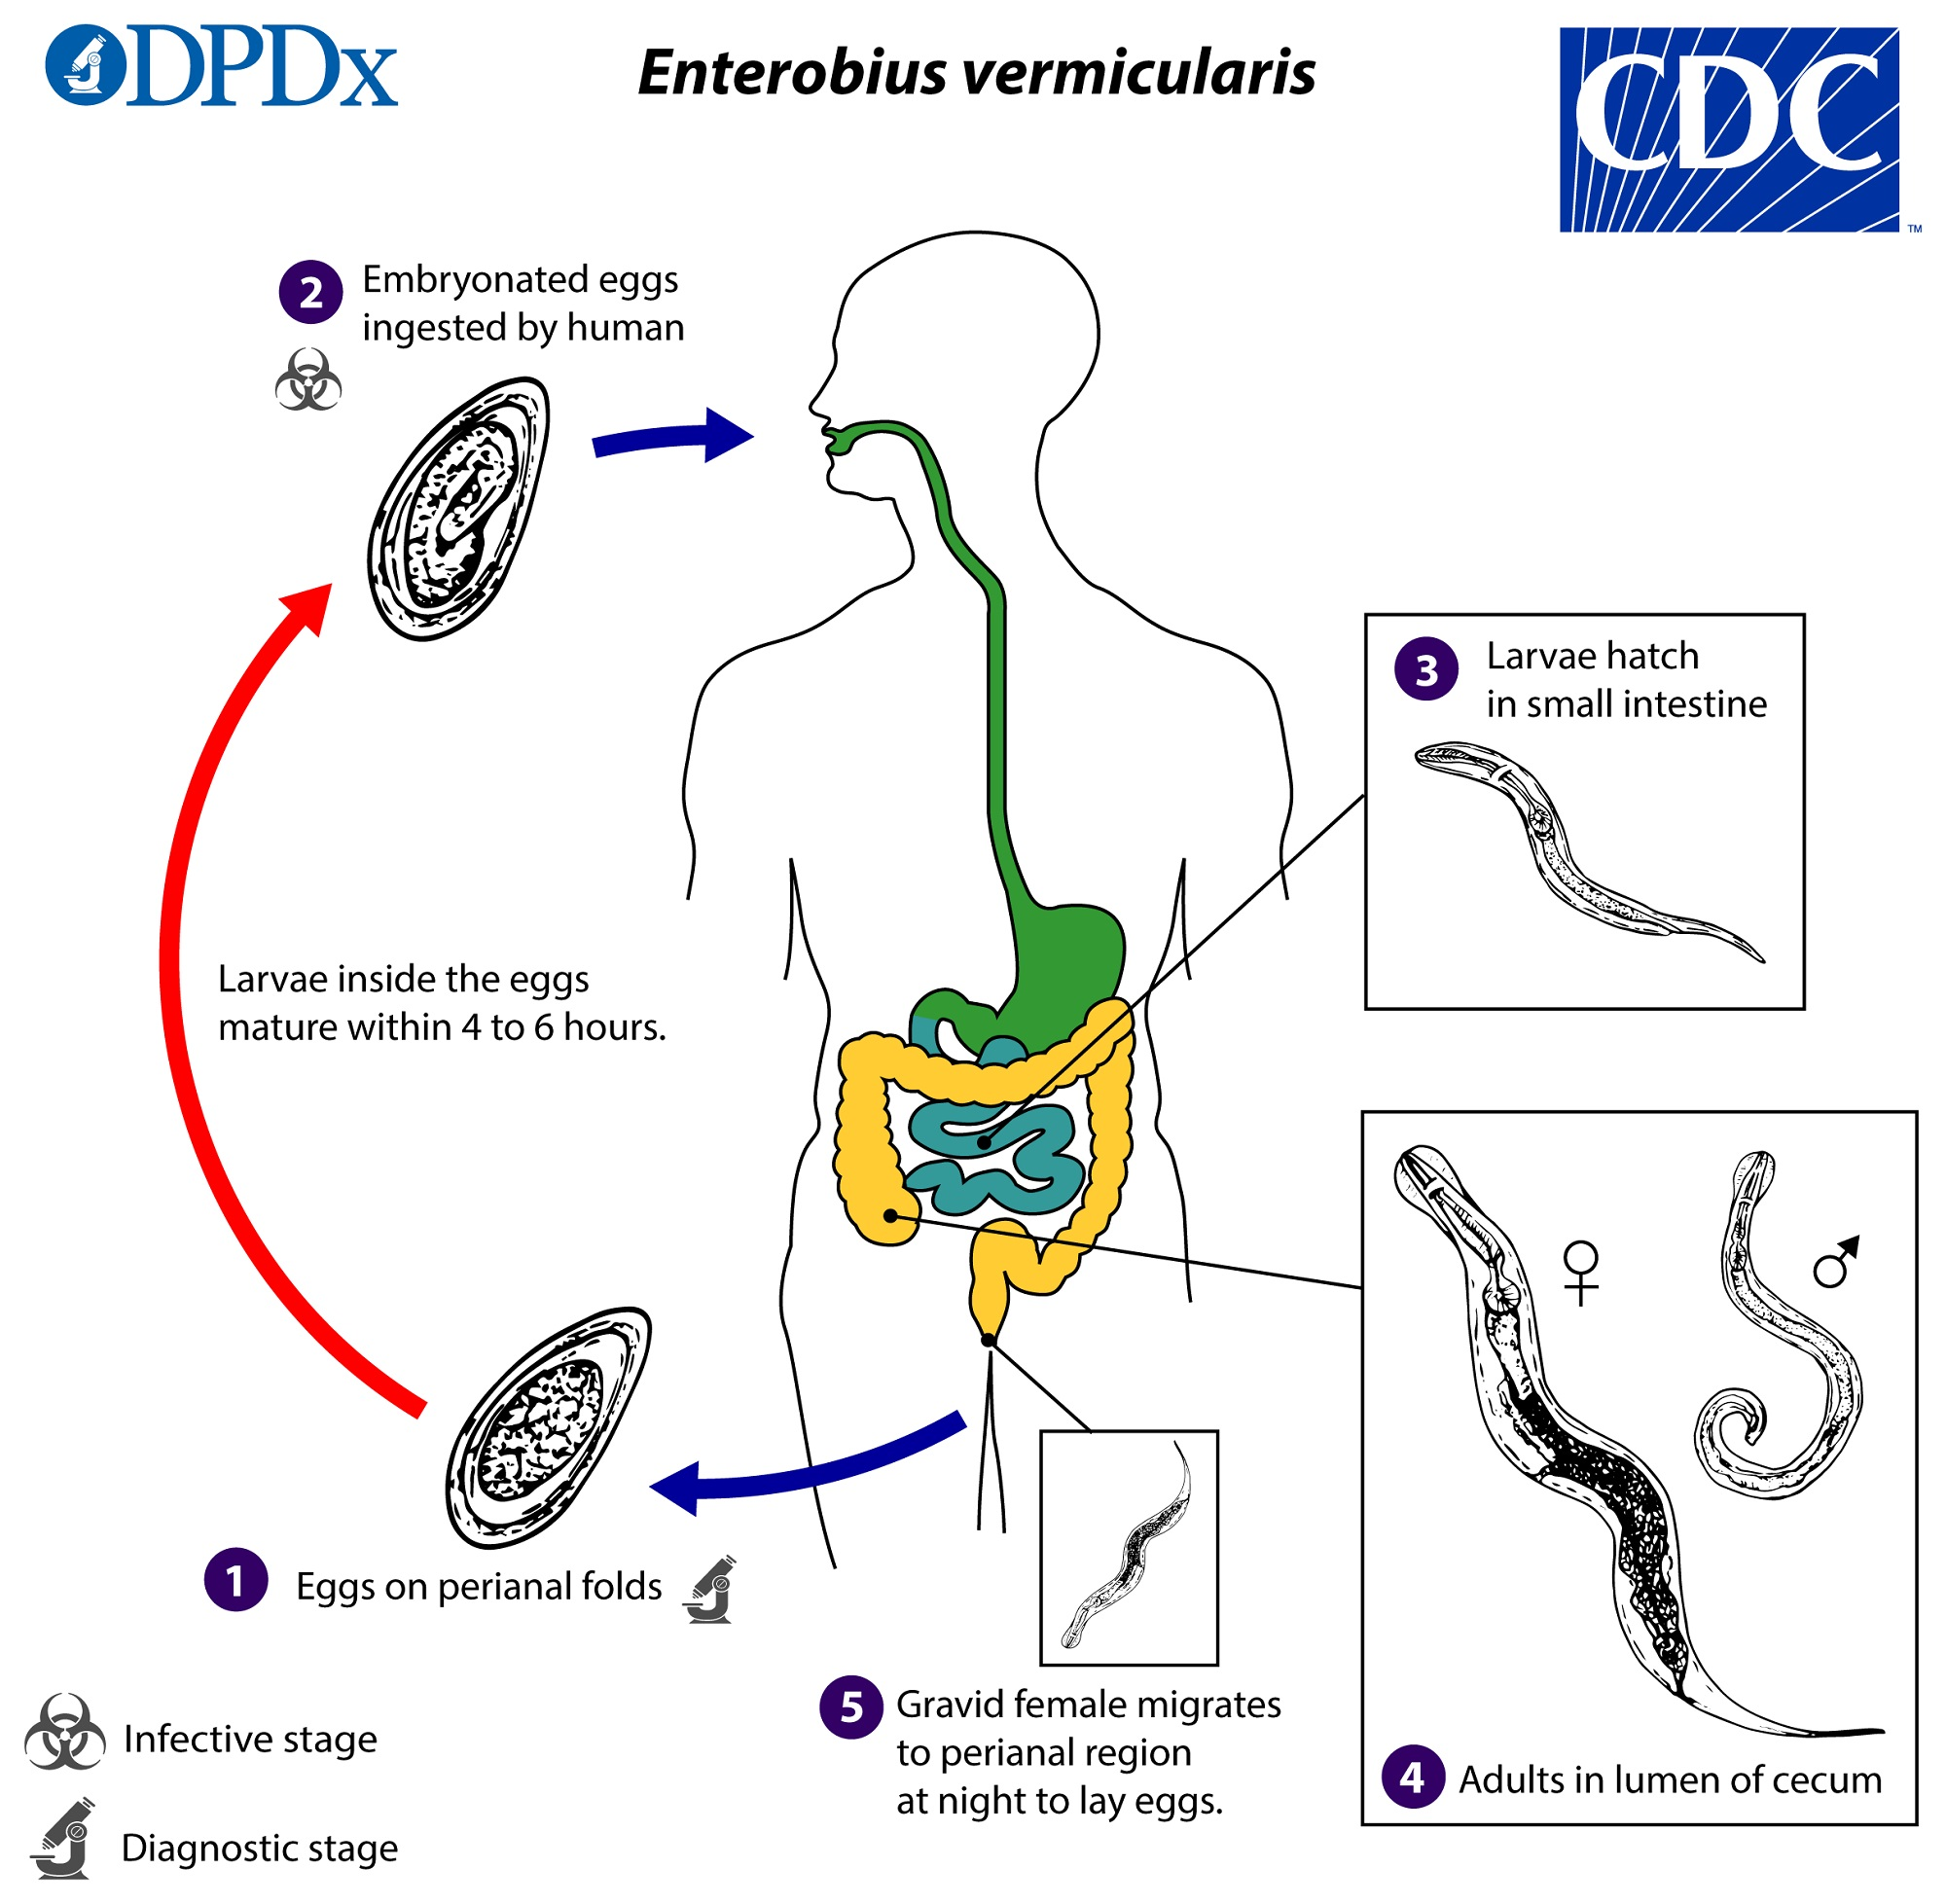 enterobius vermicularis signs and symptoms virus del papiloma humano en la garganta